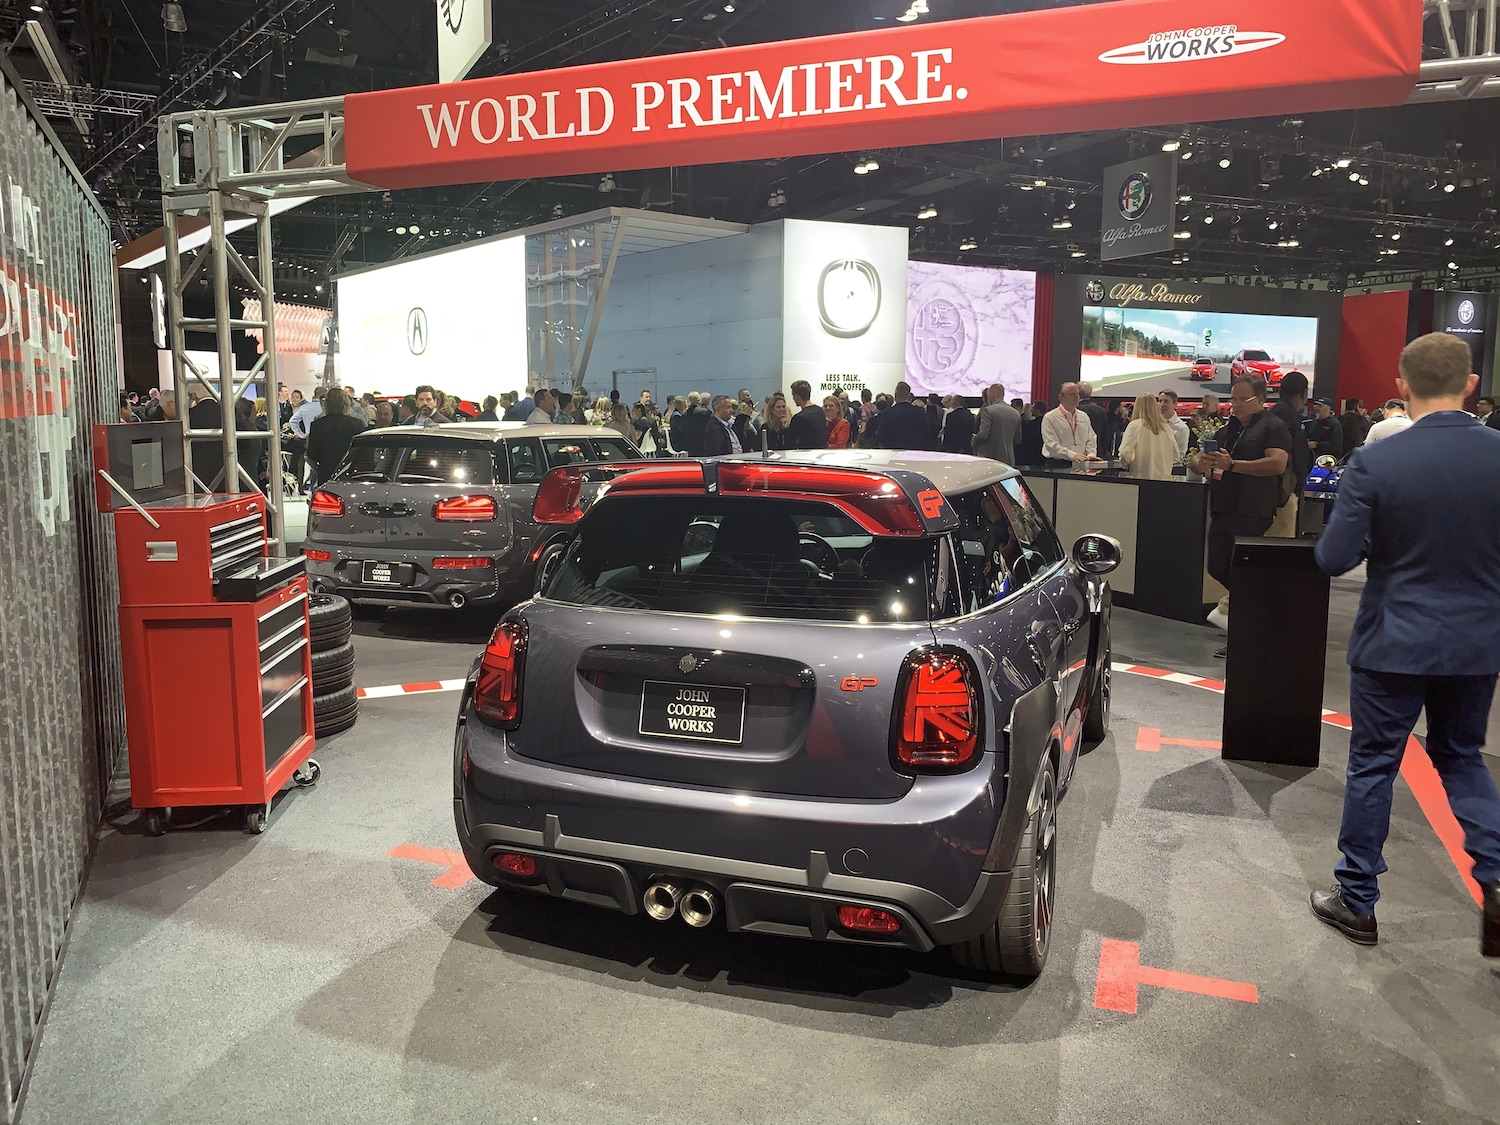 John Cooper Works GP mini rear